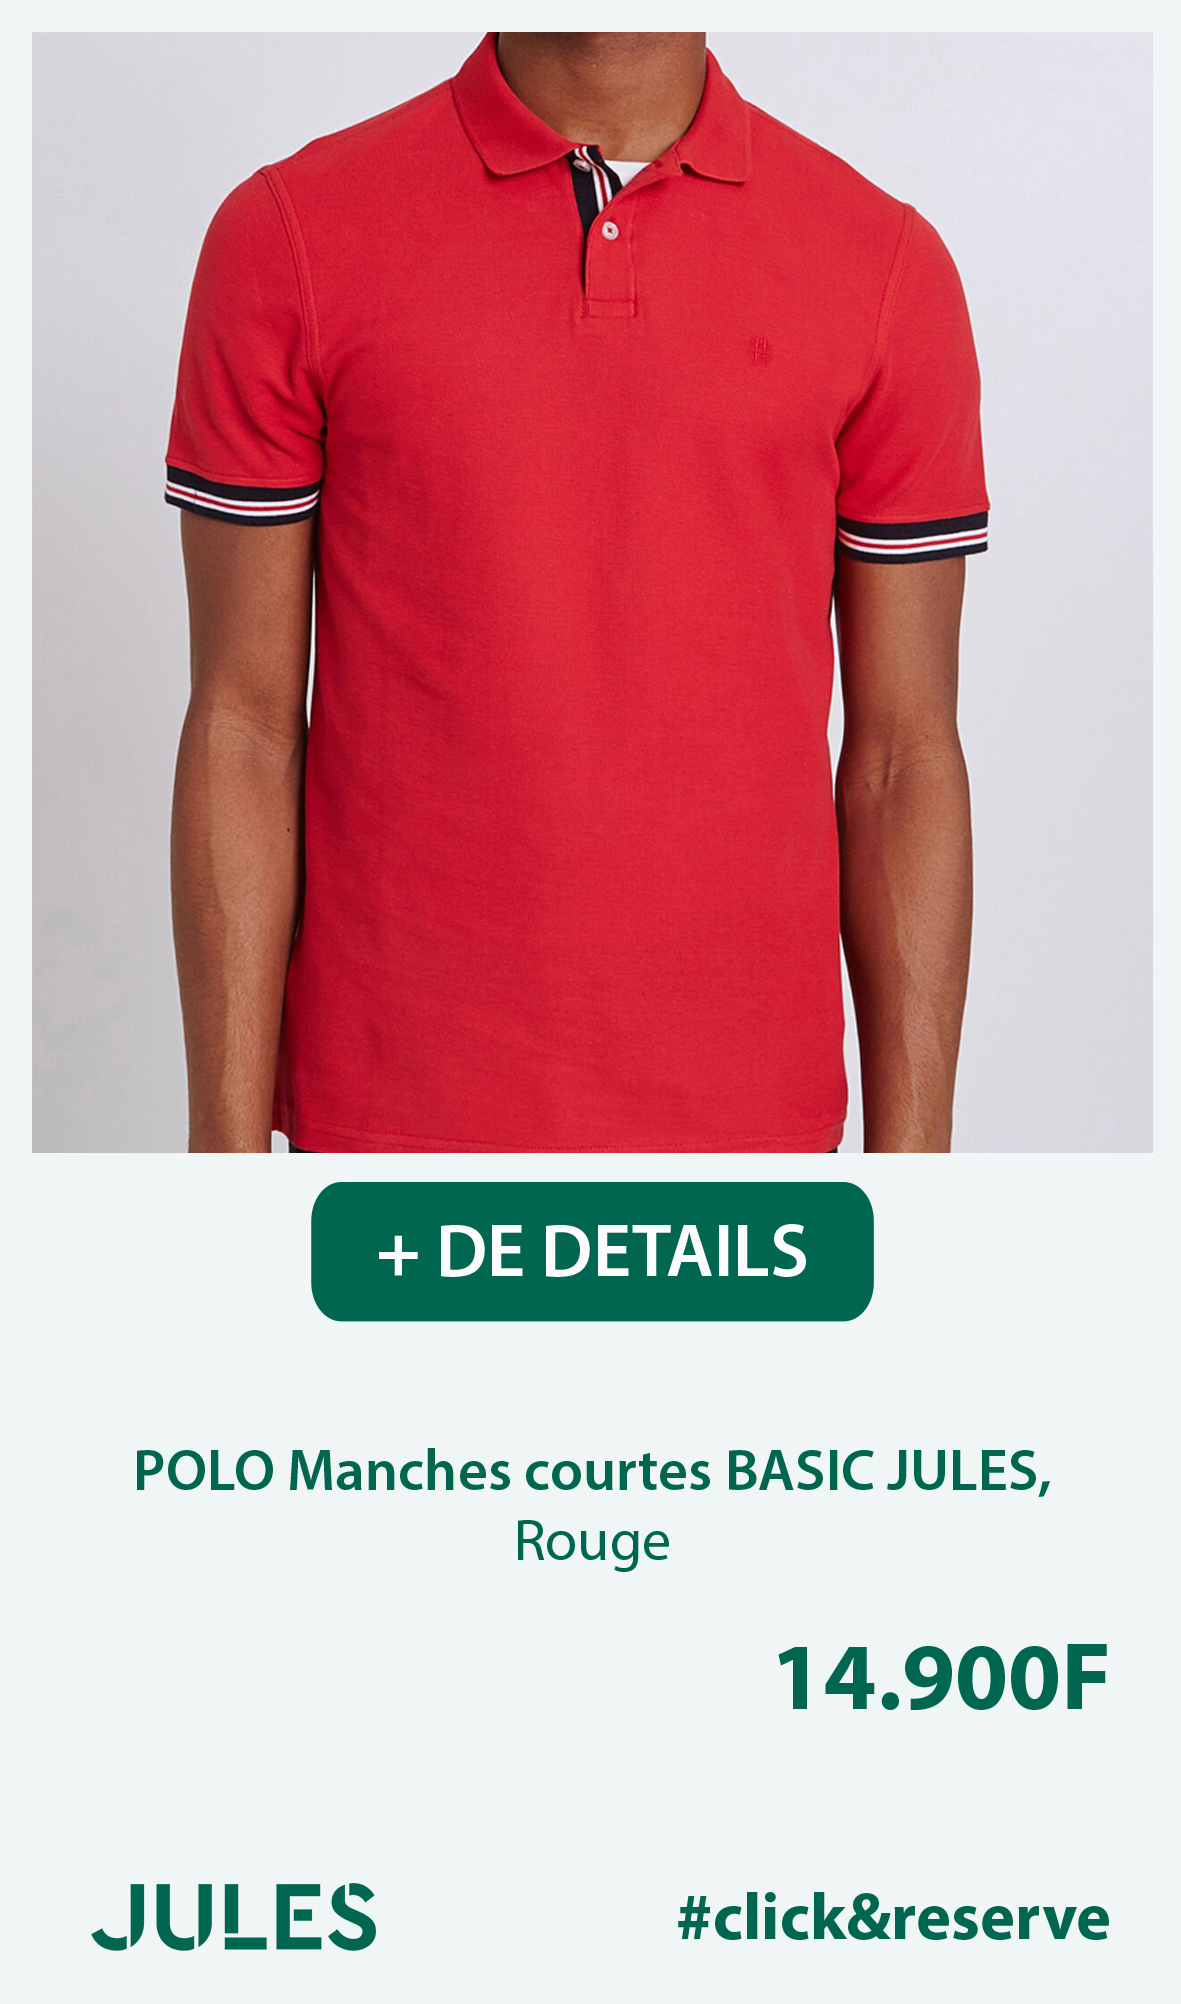 POLO Manches courtes BASIC JULES, Rouge